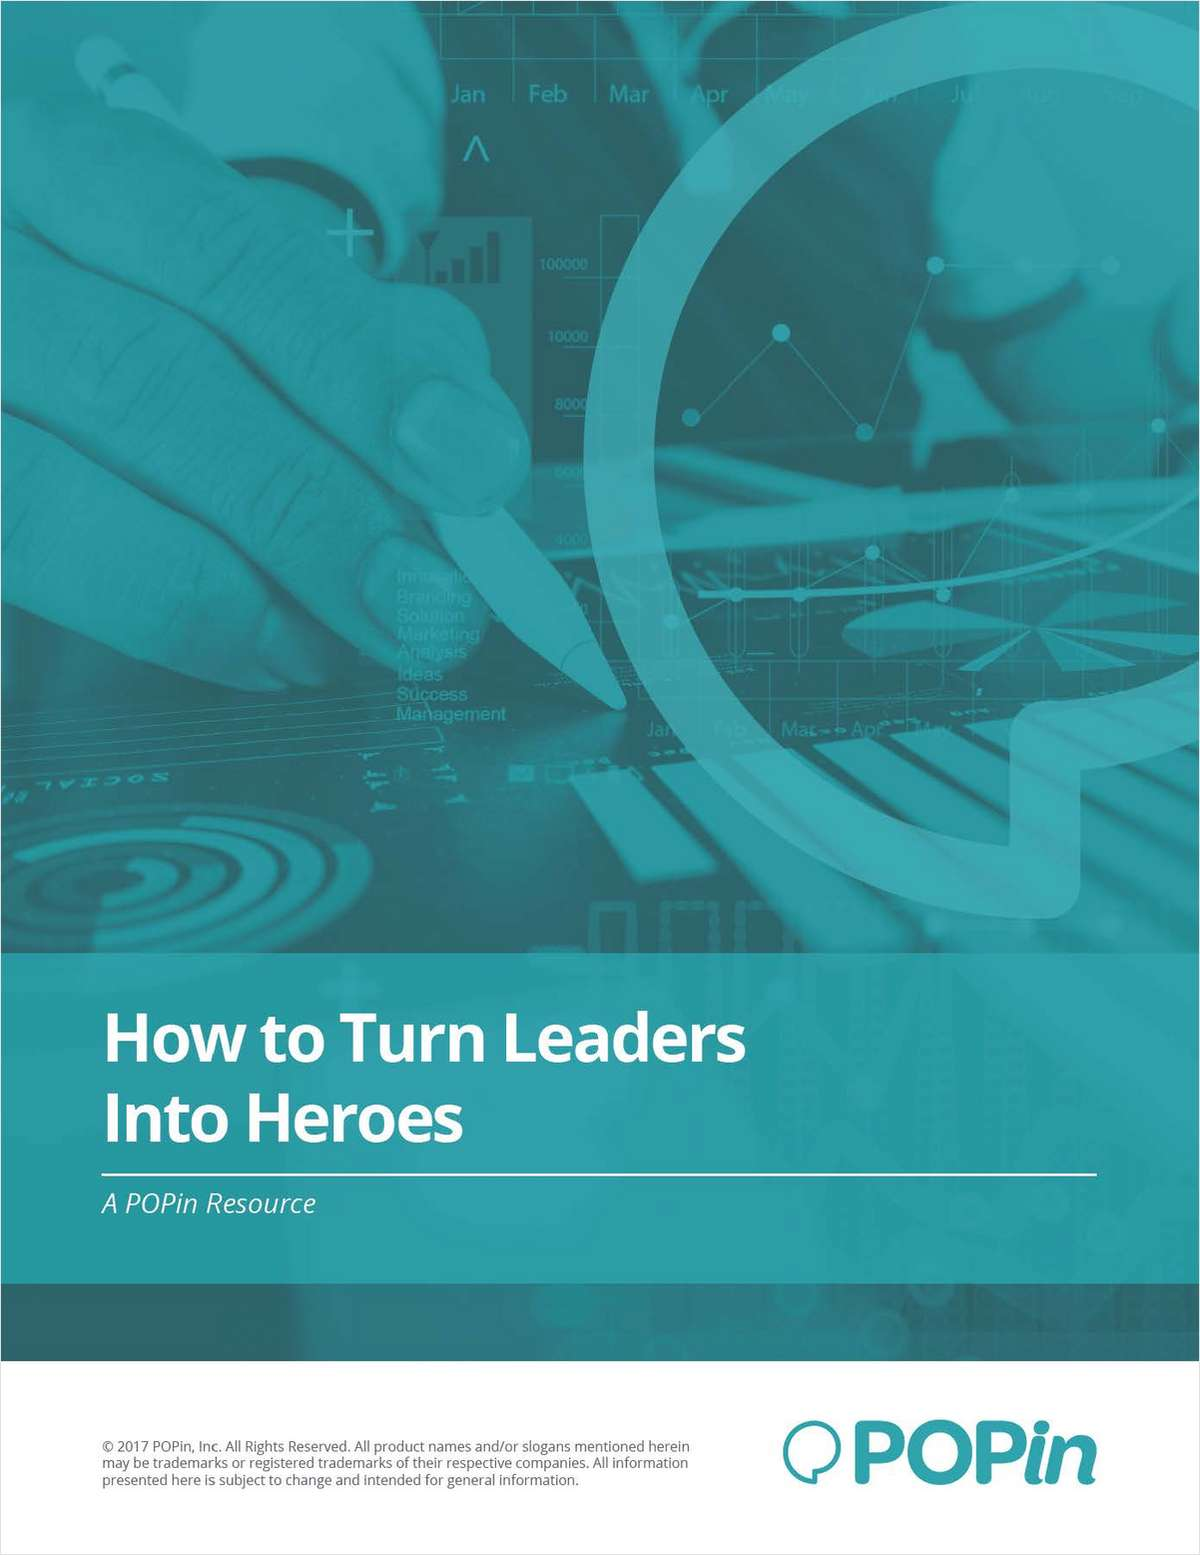 How to Turn Leaders into Heroes